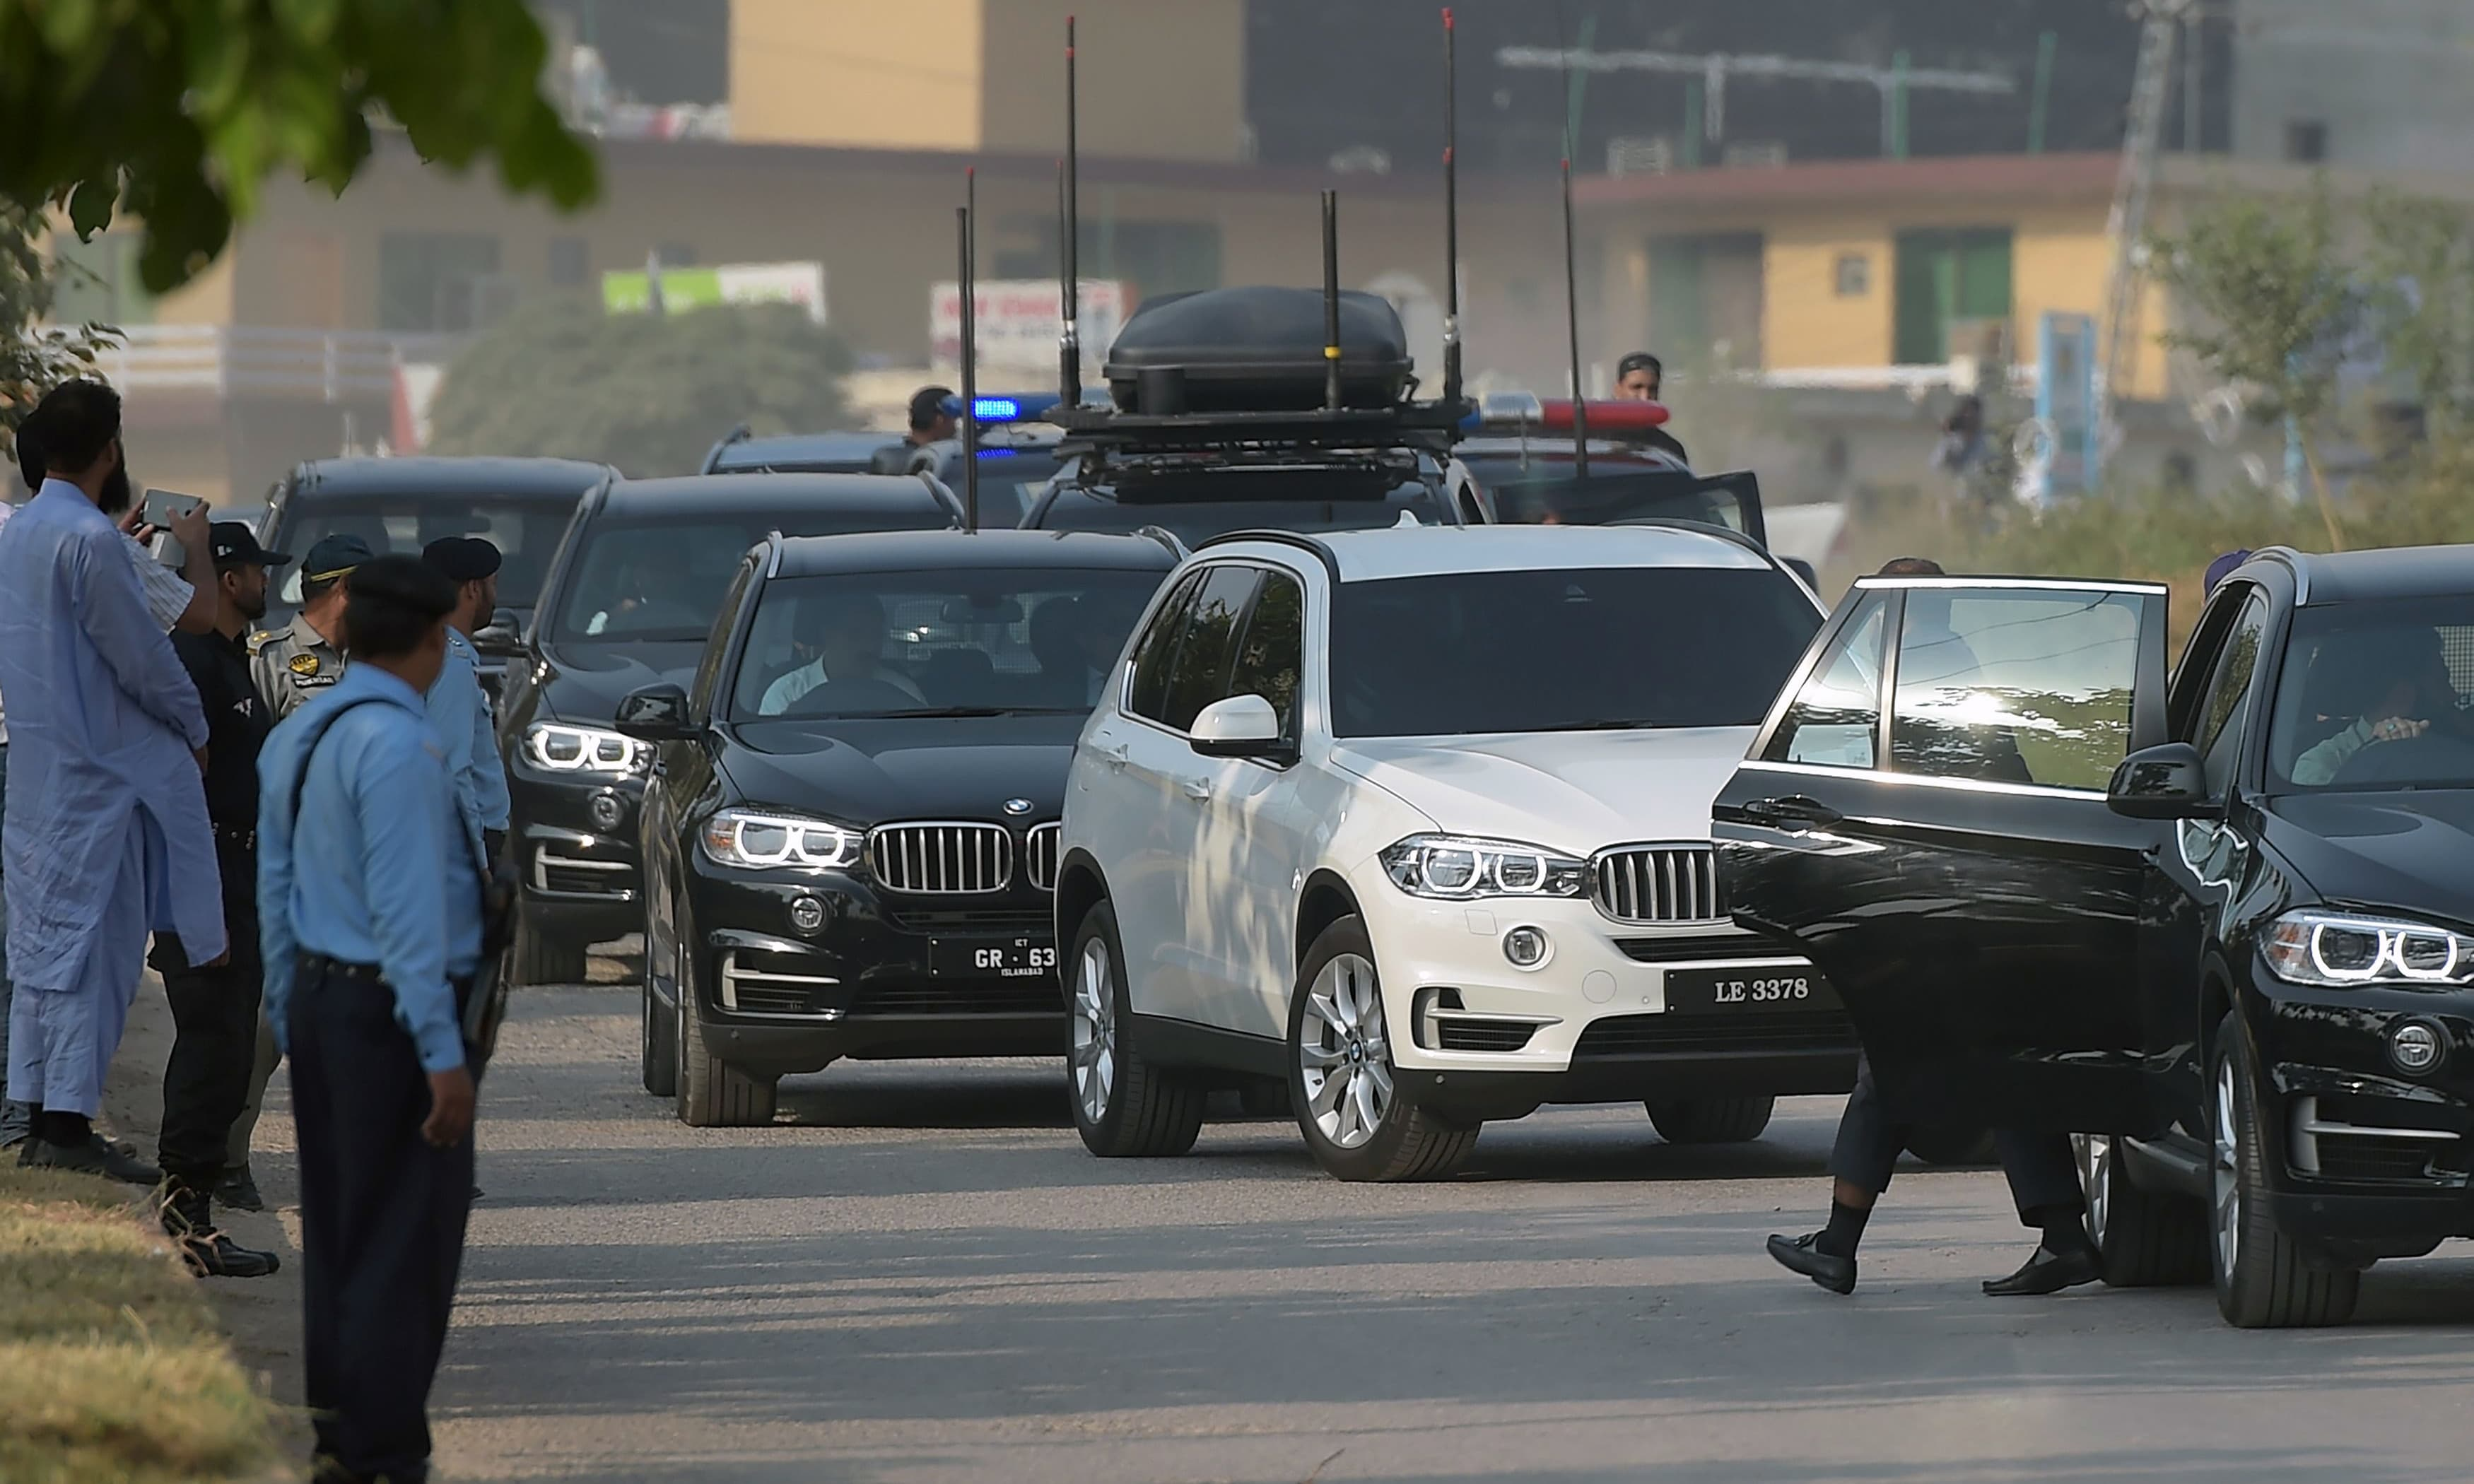 Security vehicles escort a white car carrying Nawaz Sharif. —AFP